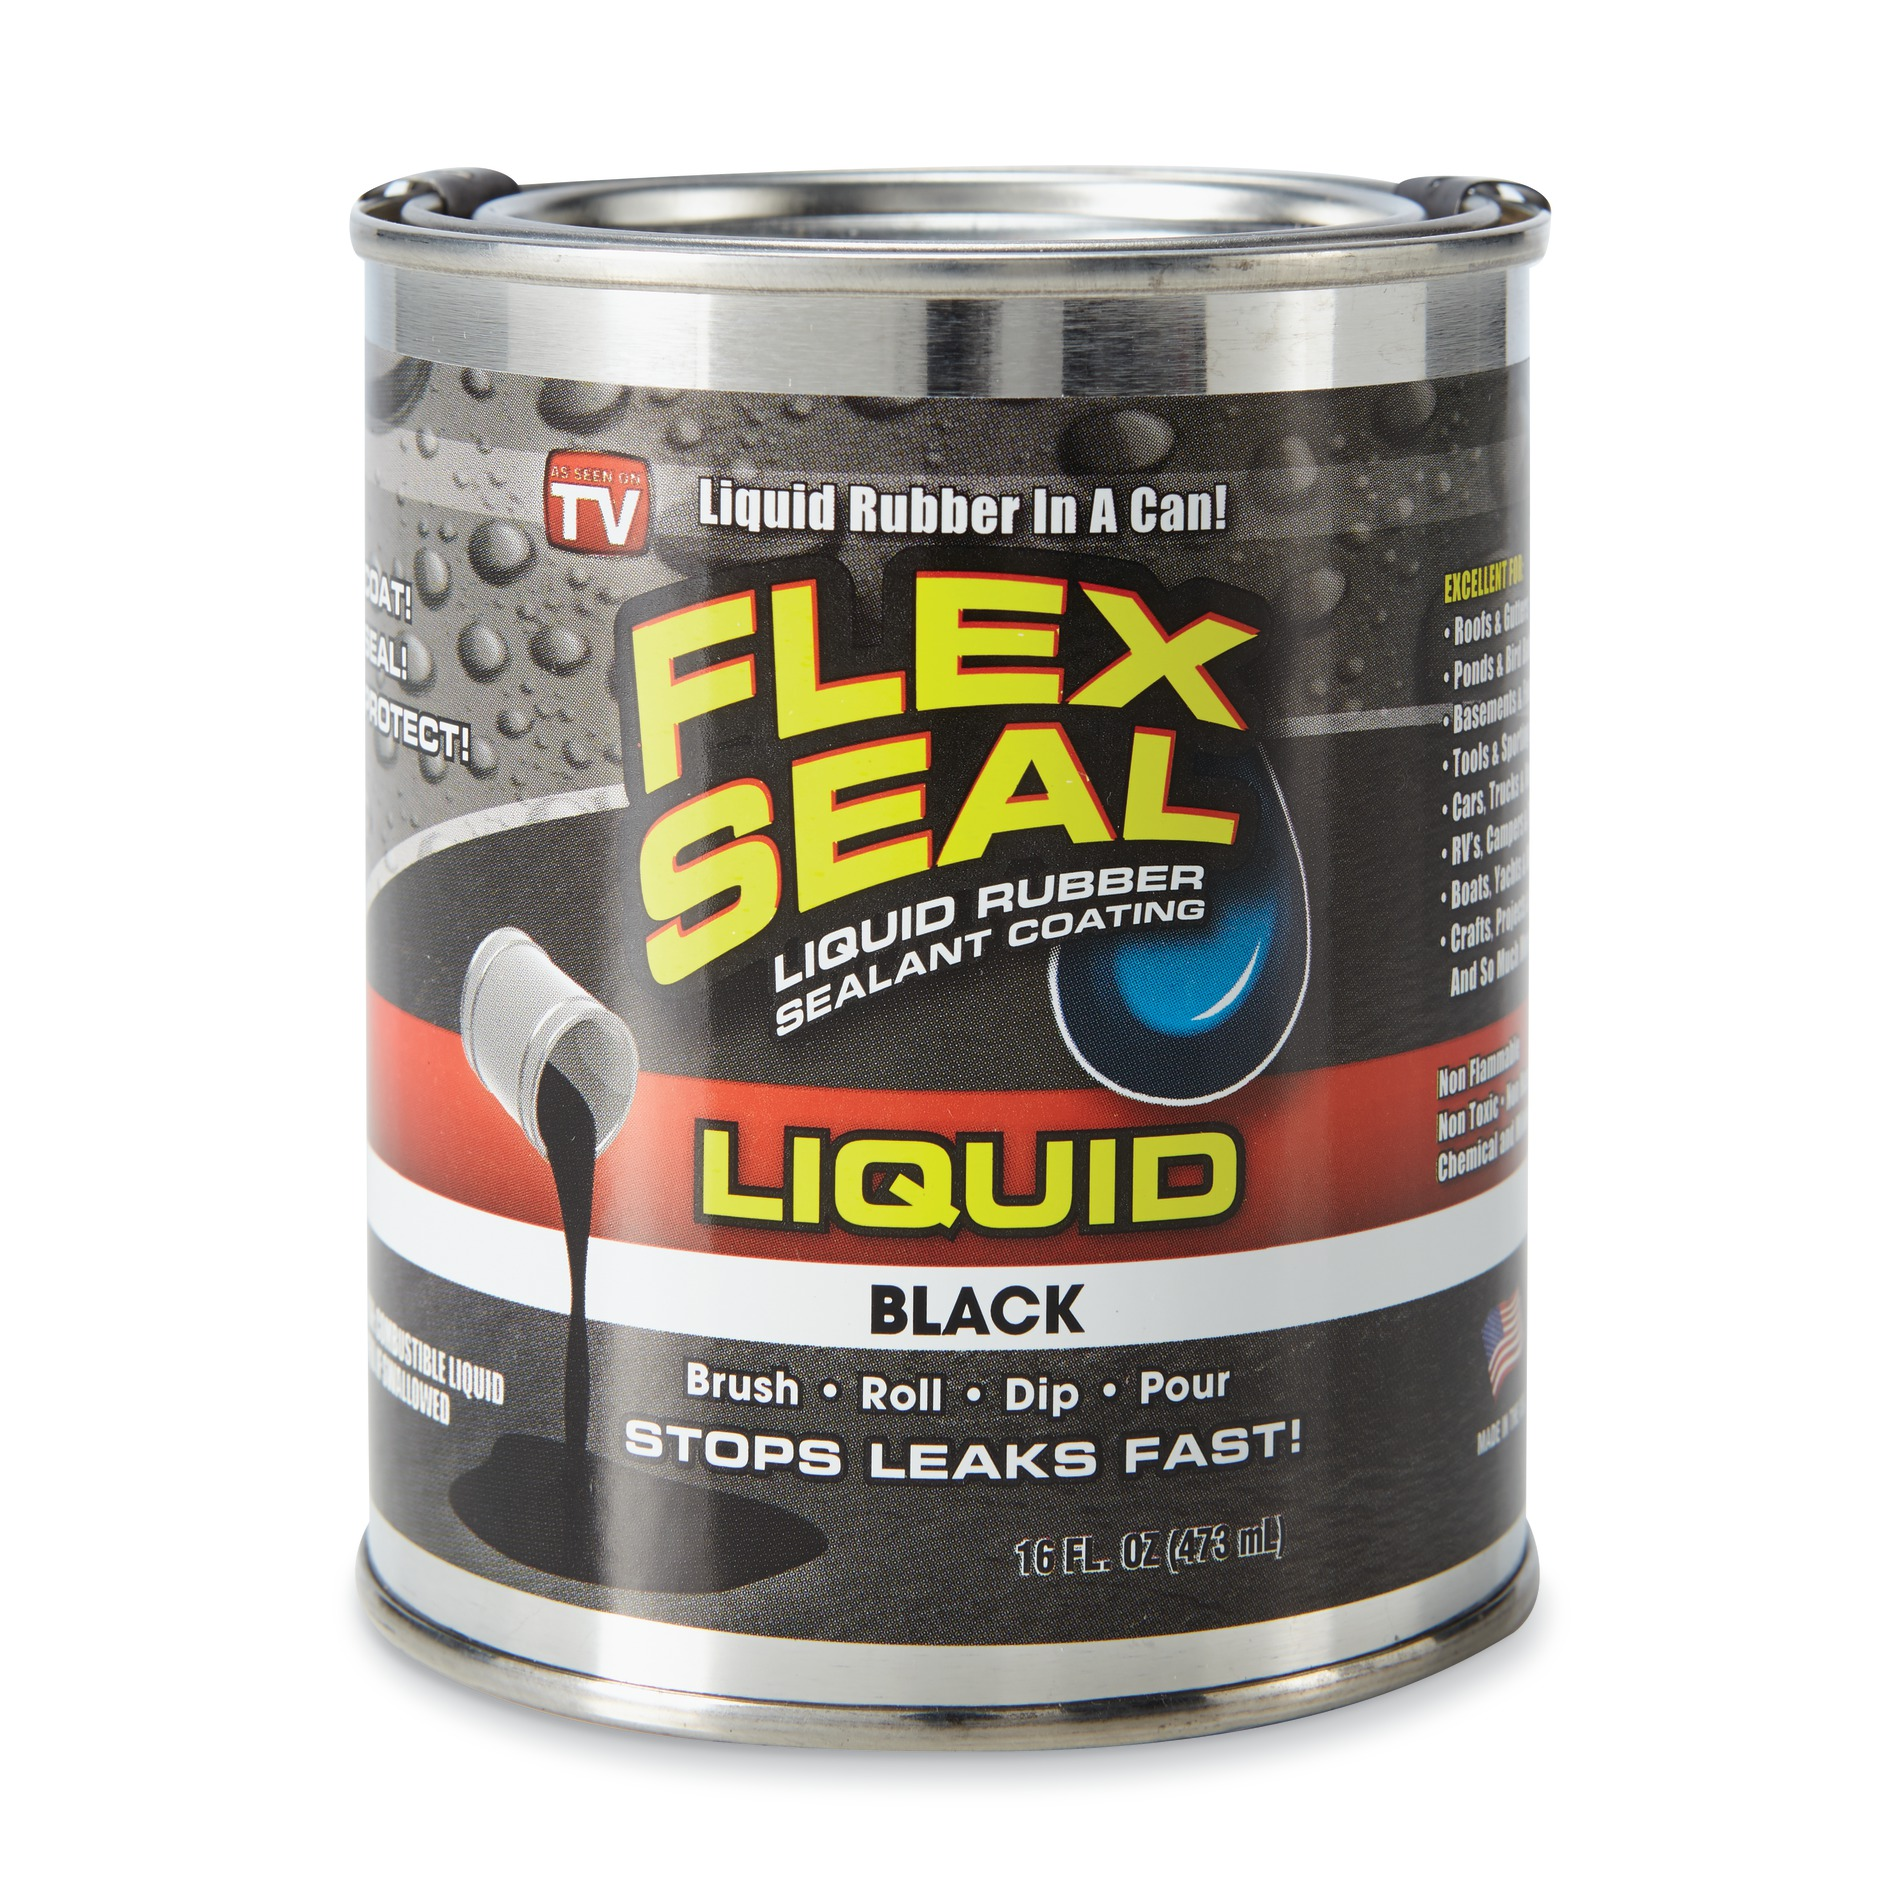 Image of Flex Seal Black Liquid